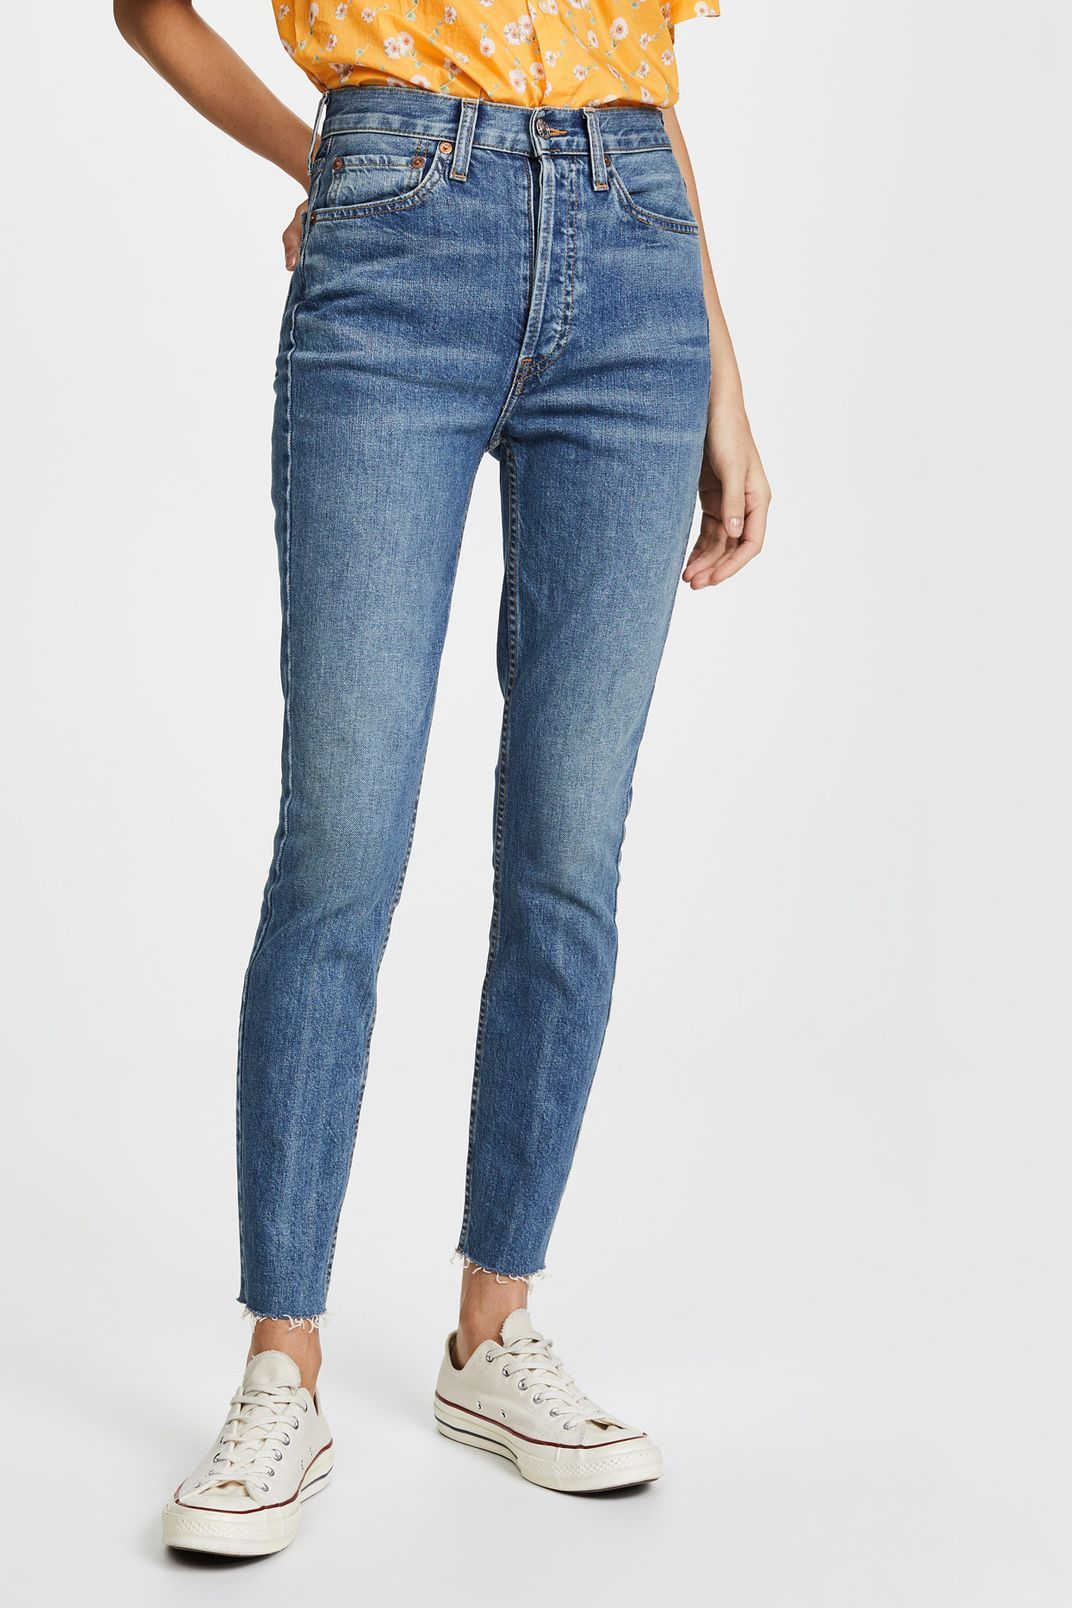 110376e6a43 30 Best Jeans for Women of All Sizes and Styles 2019